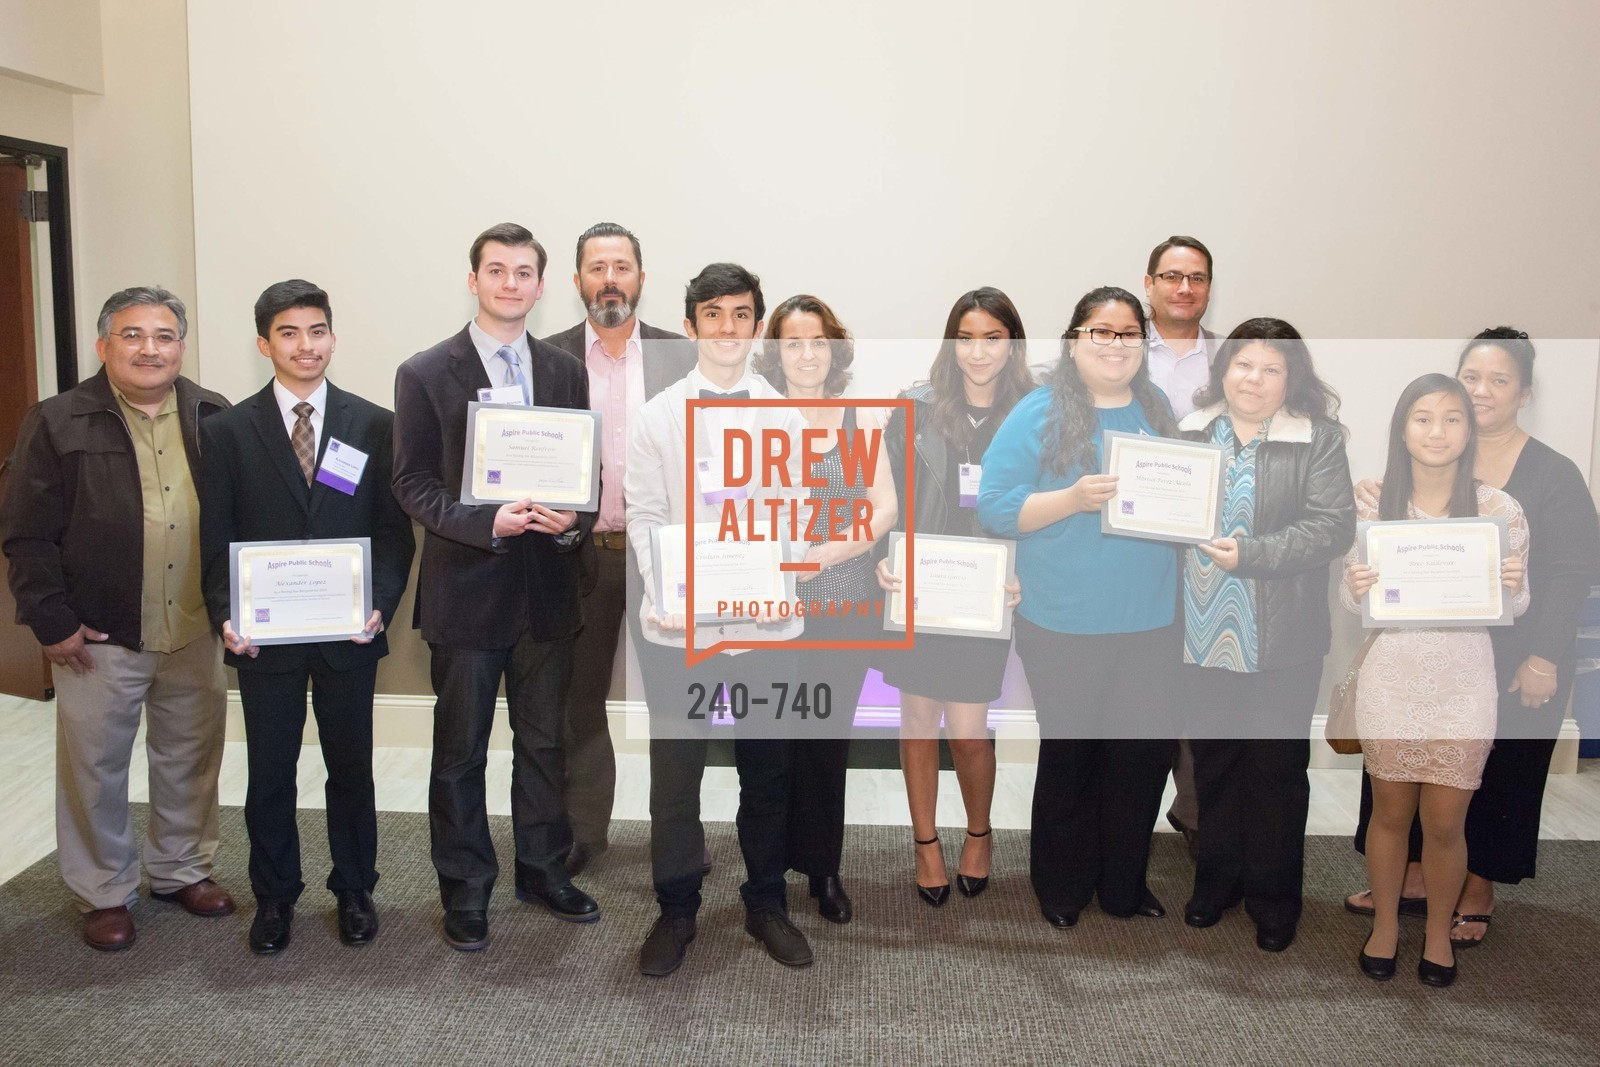 Alexander Lopez, Samuel Renfrow, Michael Renfrow, Cristian Jimenez, Laura Garcia, Marisol Perez Alcala, James Willcox, Marcela Alcala, Bree Saldevar, Aspire Annual College for Certain Dinne, US, May 21st, 2015